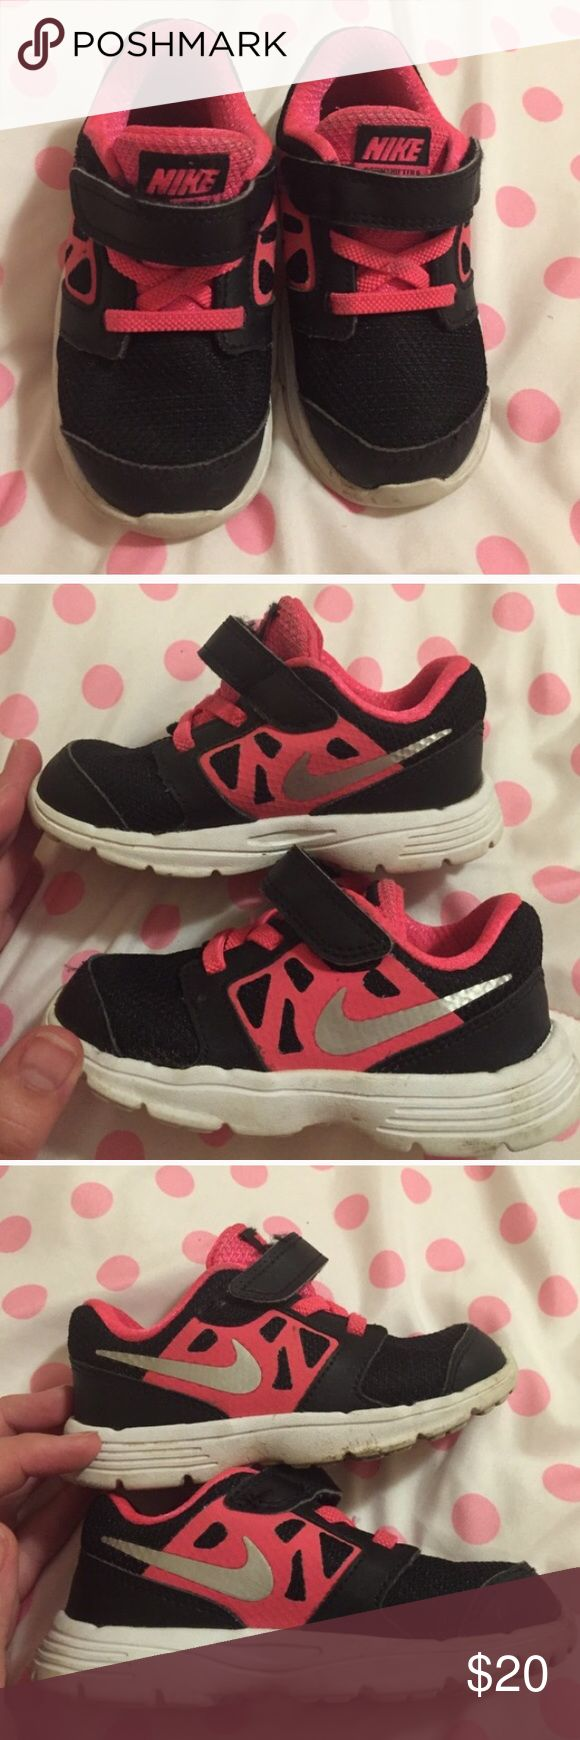 Nike free runner Adorable black n pink wit silver check logo. Good condition n very lite on the toddlers feet. 7C Nike Shoes Sneakers